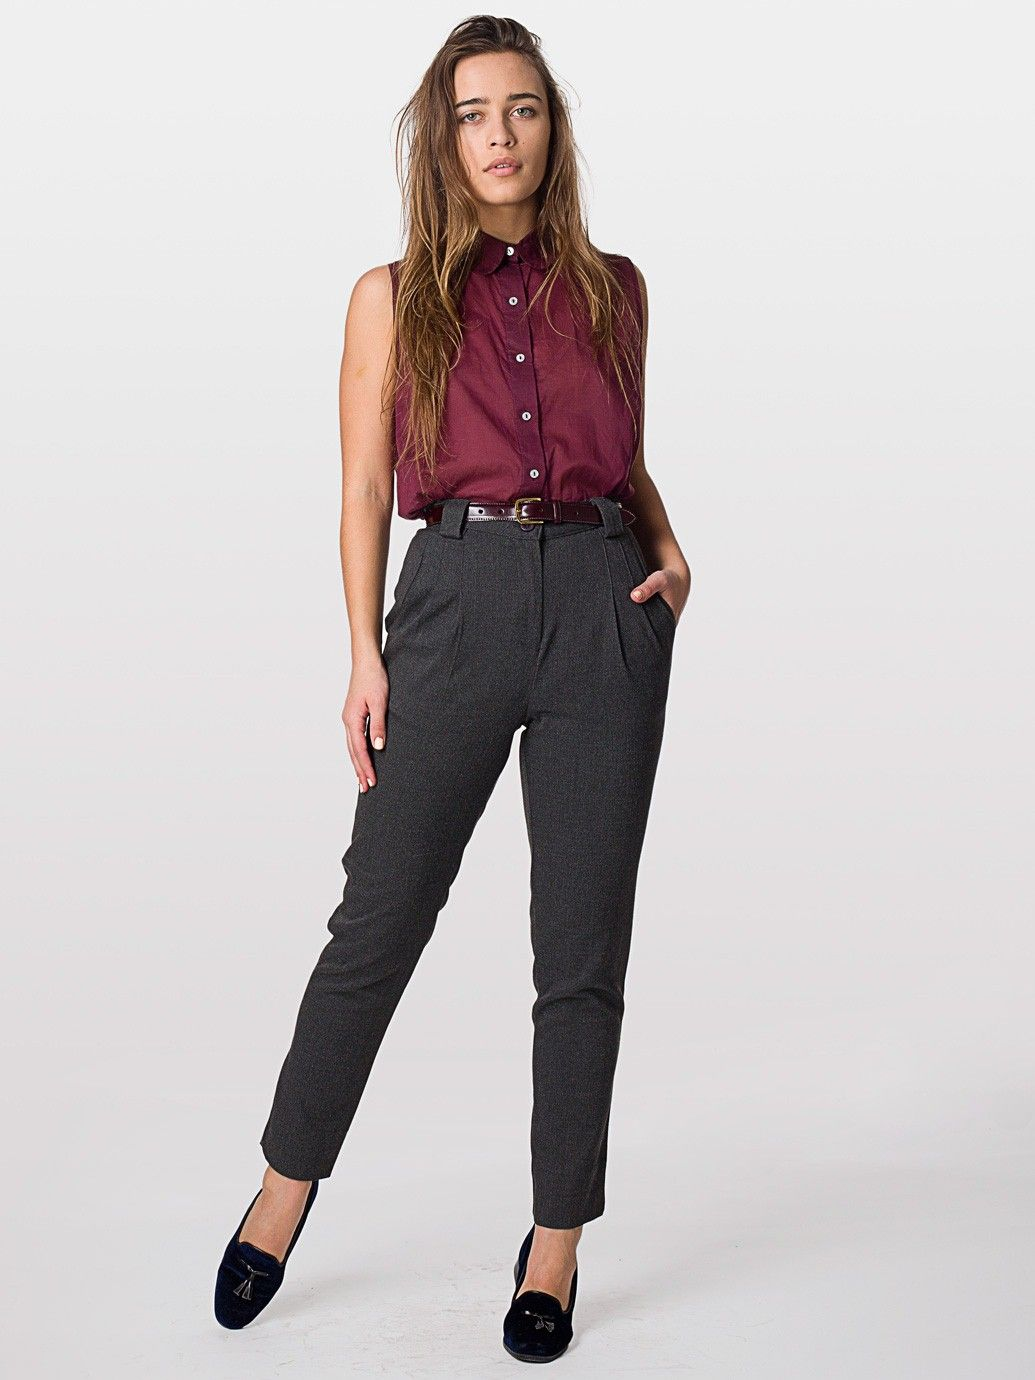 American Apparel Womens Twill Pleated Pant